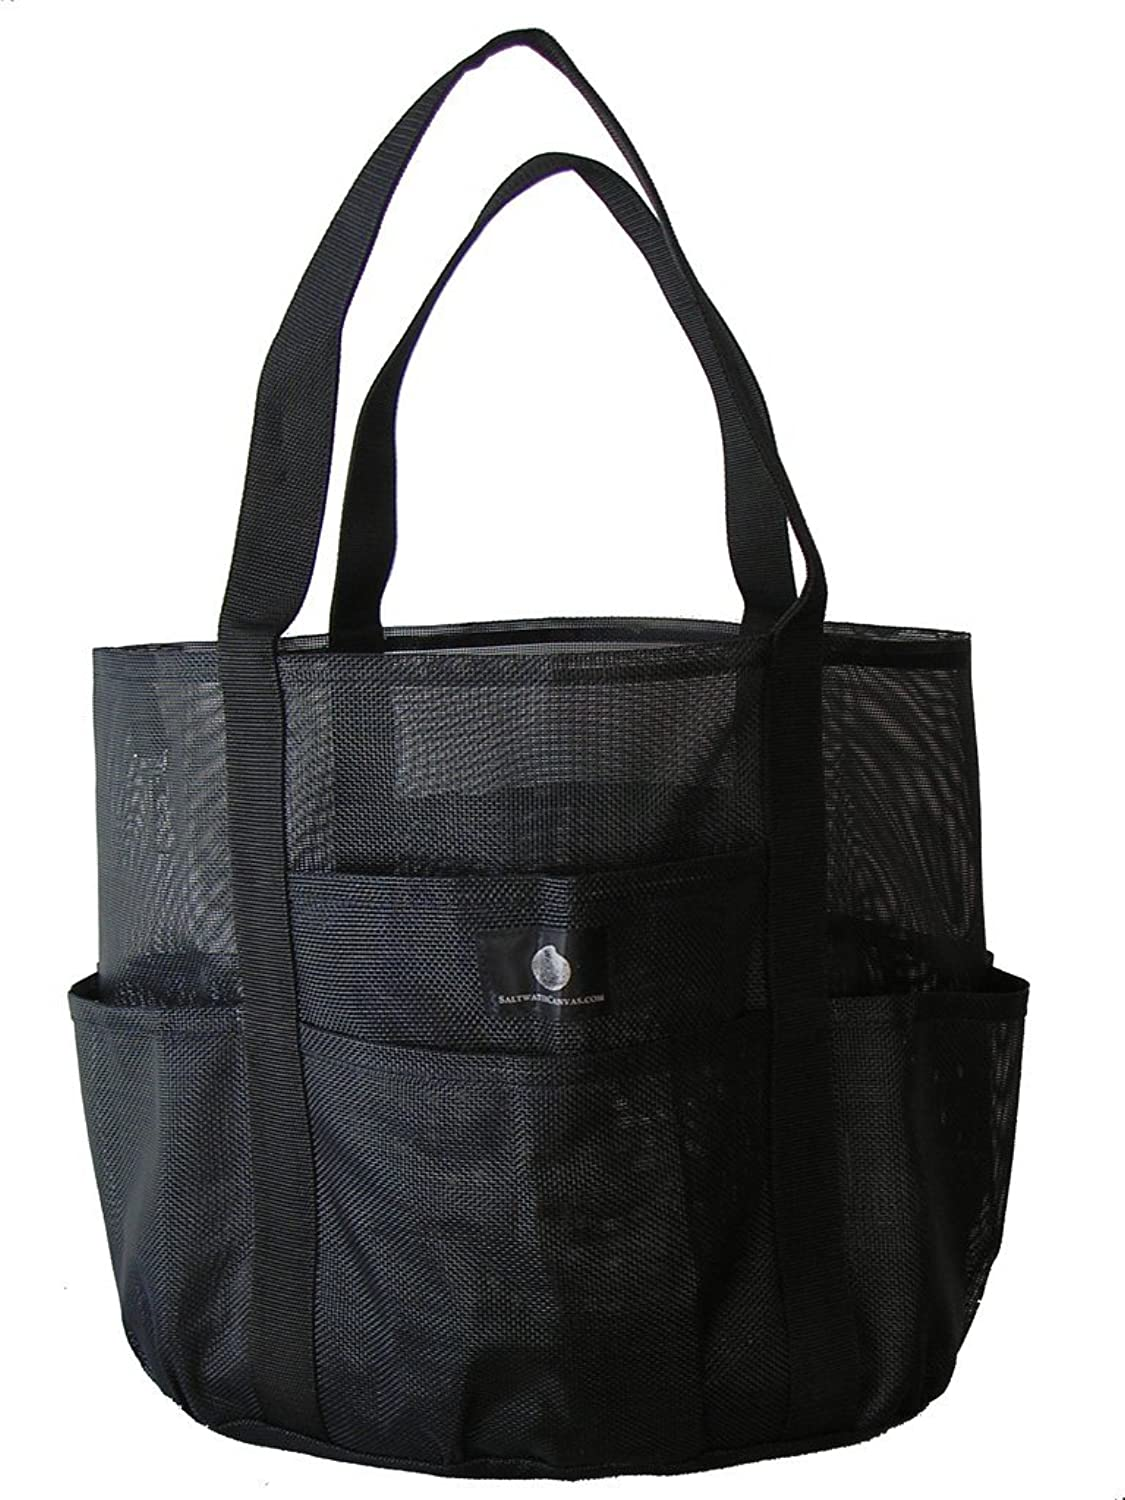 Canvas tote bags on wheels - Saltwater Canvas Whale Bag R 9 Pockets Big Family Mesh Beach Bag Tote Black